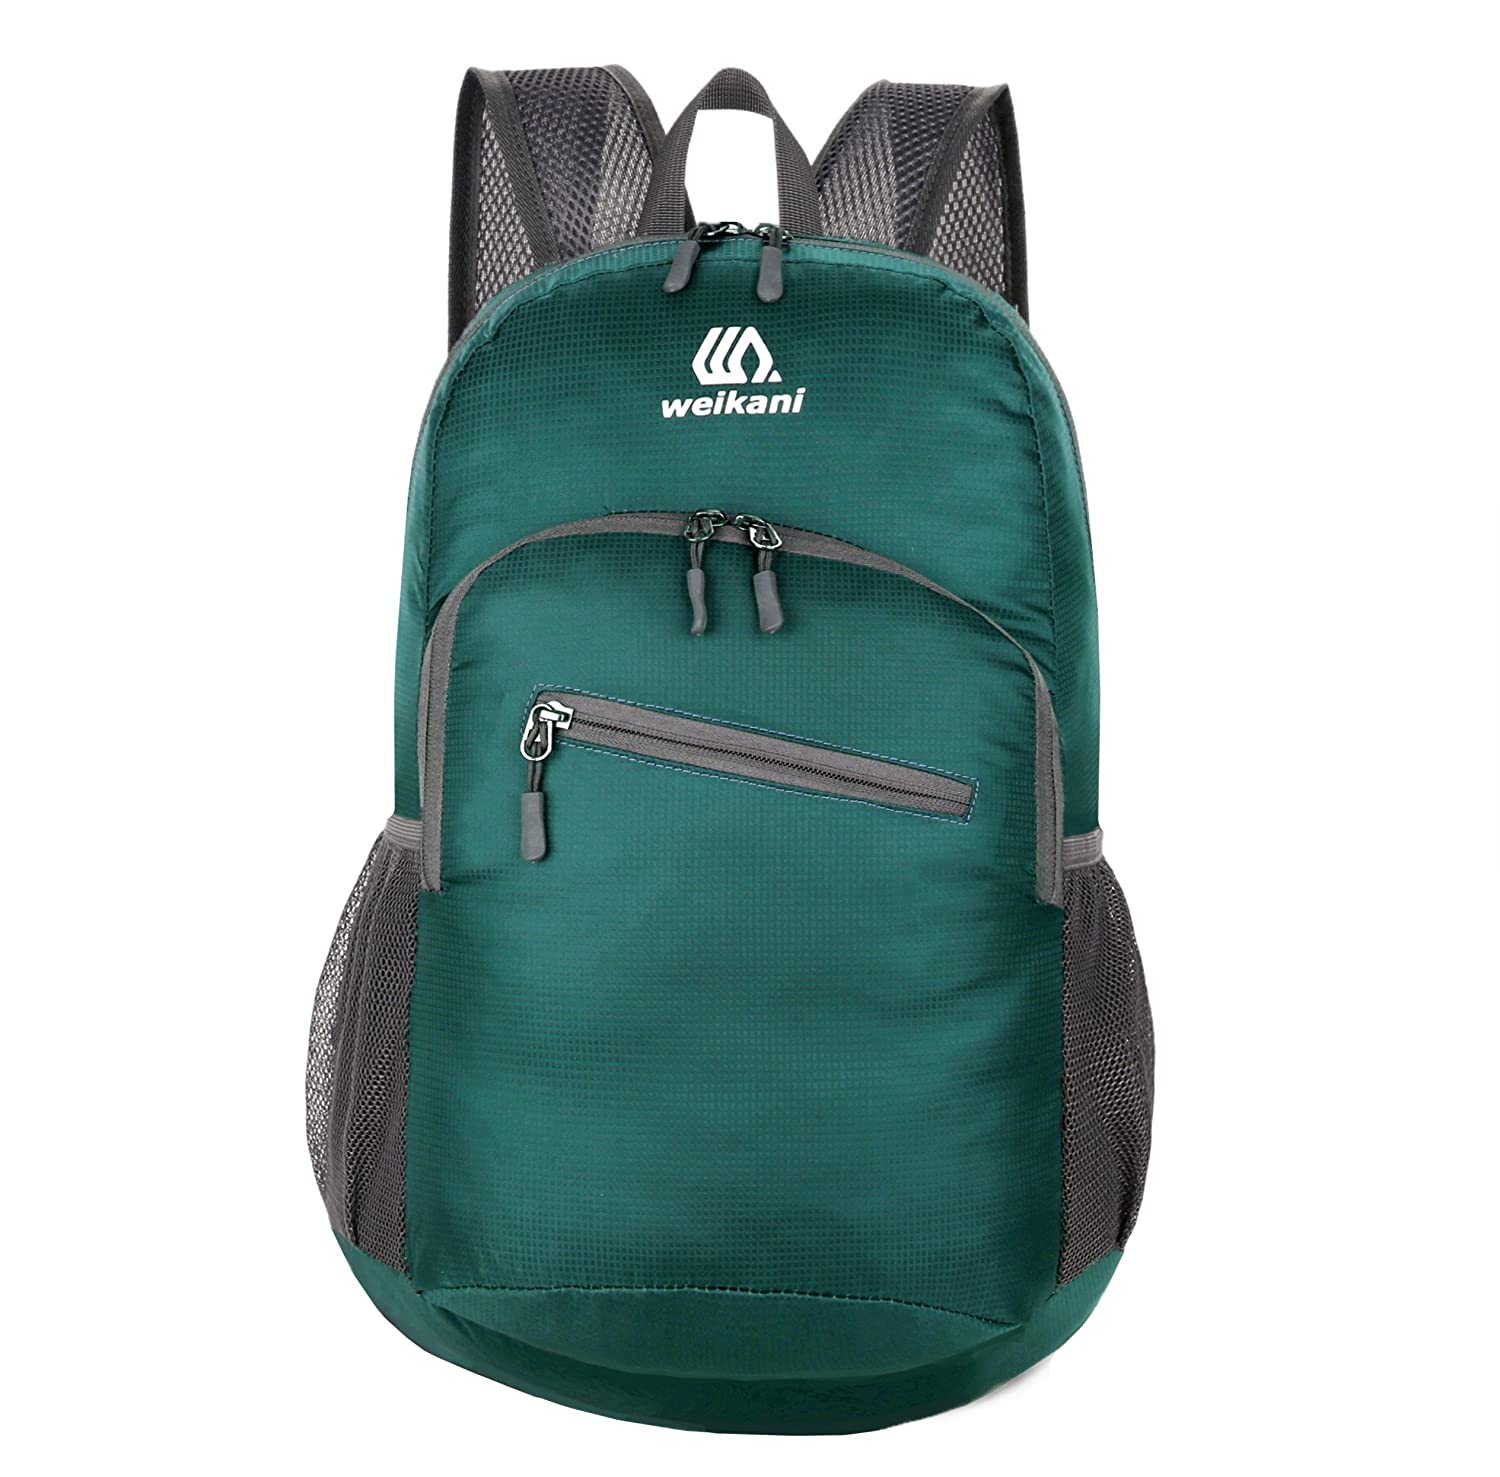 Lightweight Packable Backpack Water Resistant Travel Hiking Daypack for Men & Women